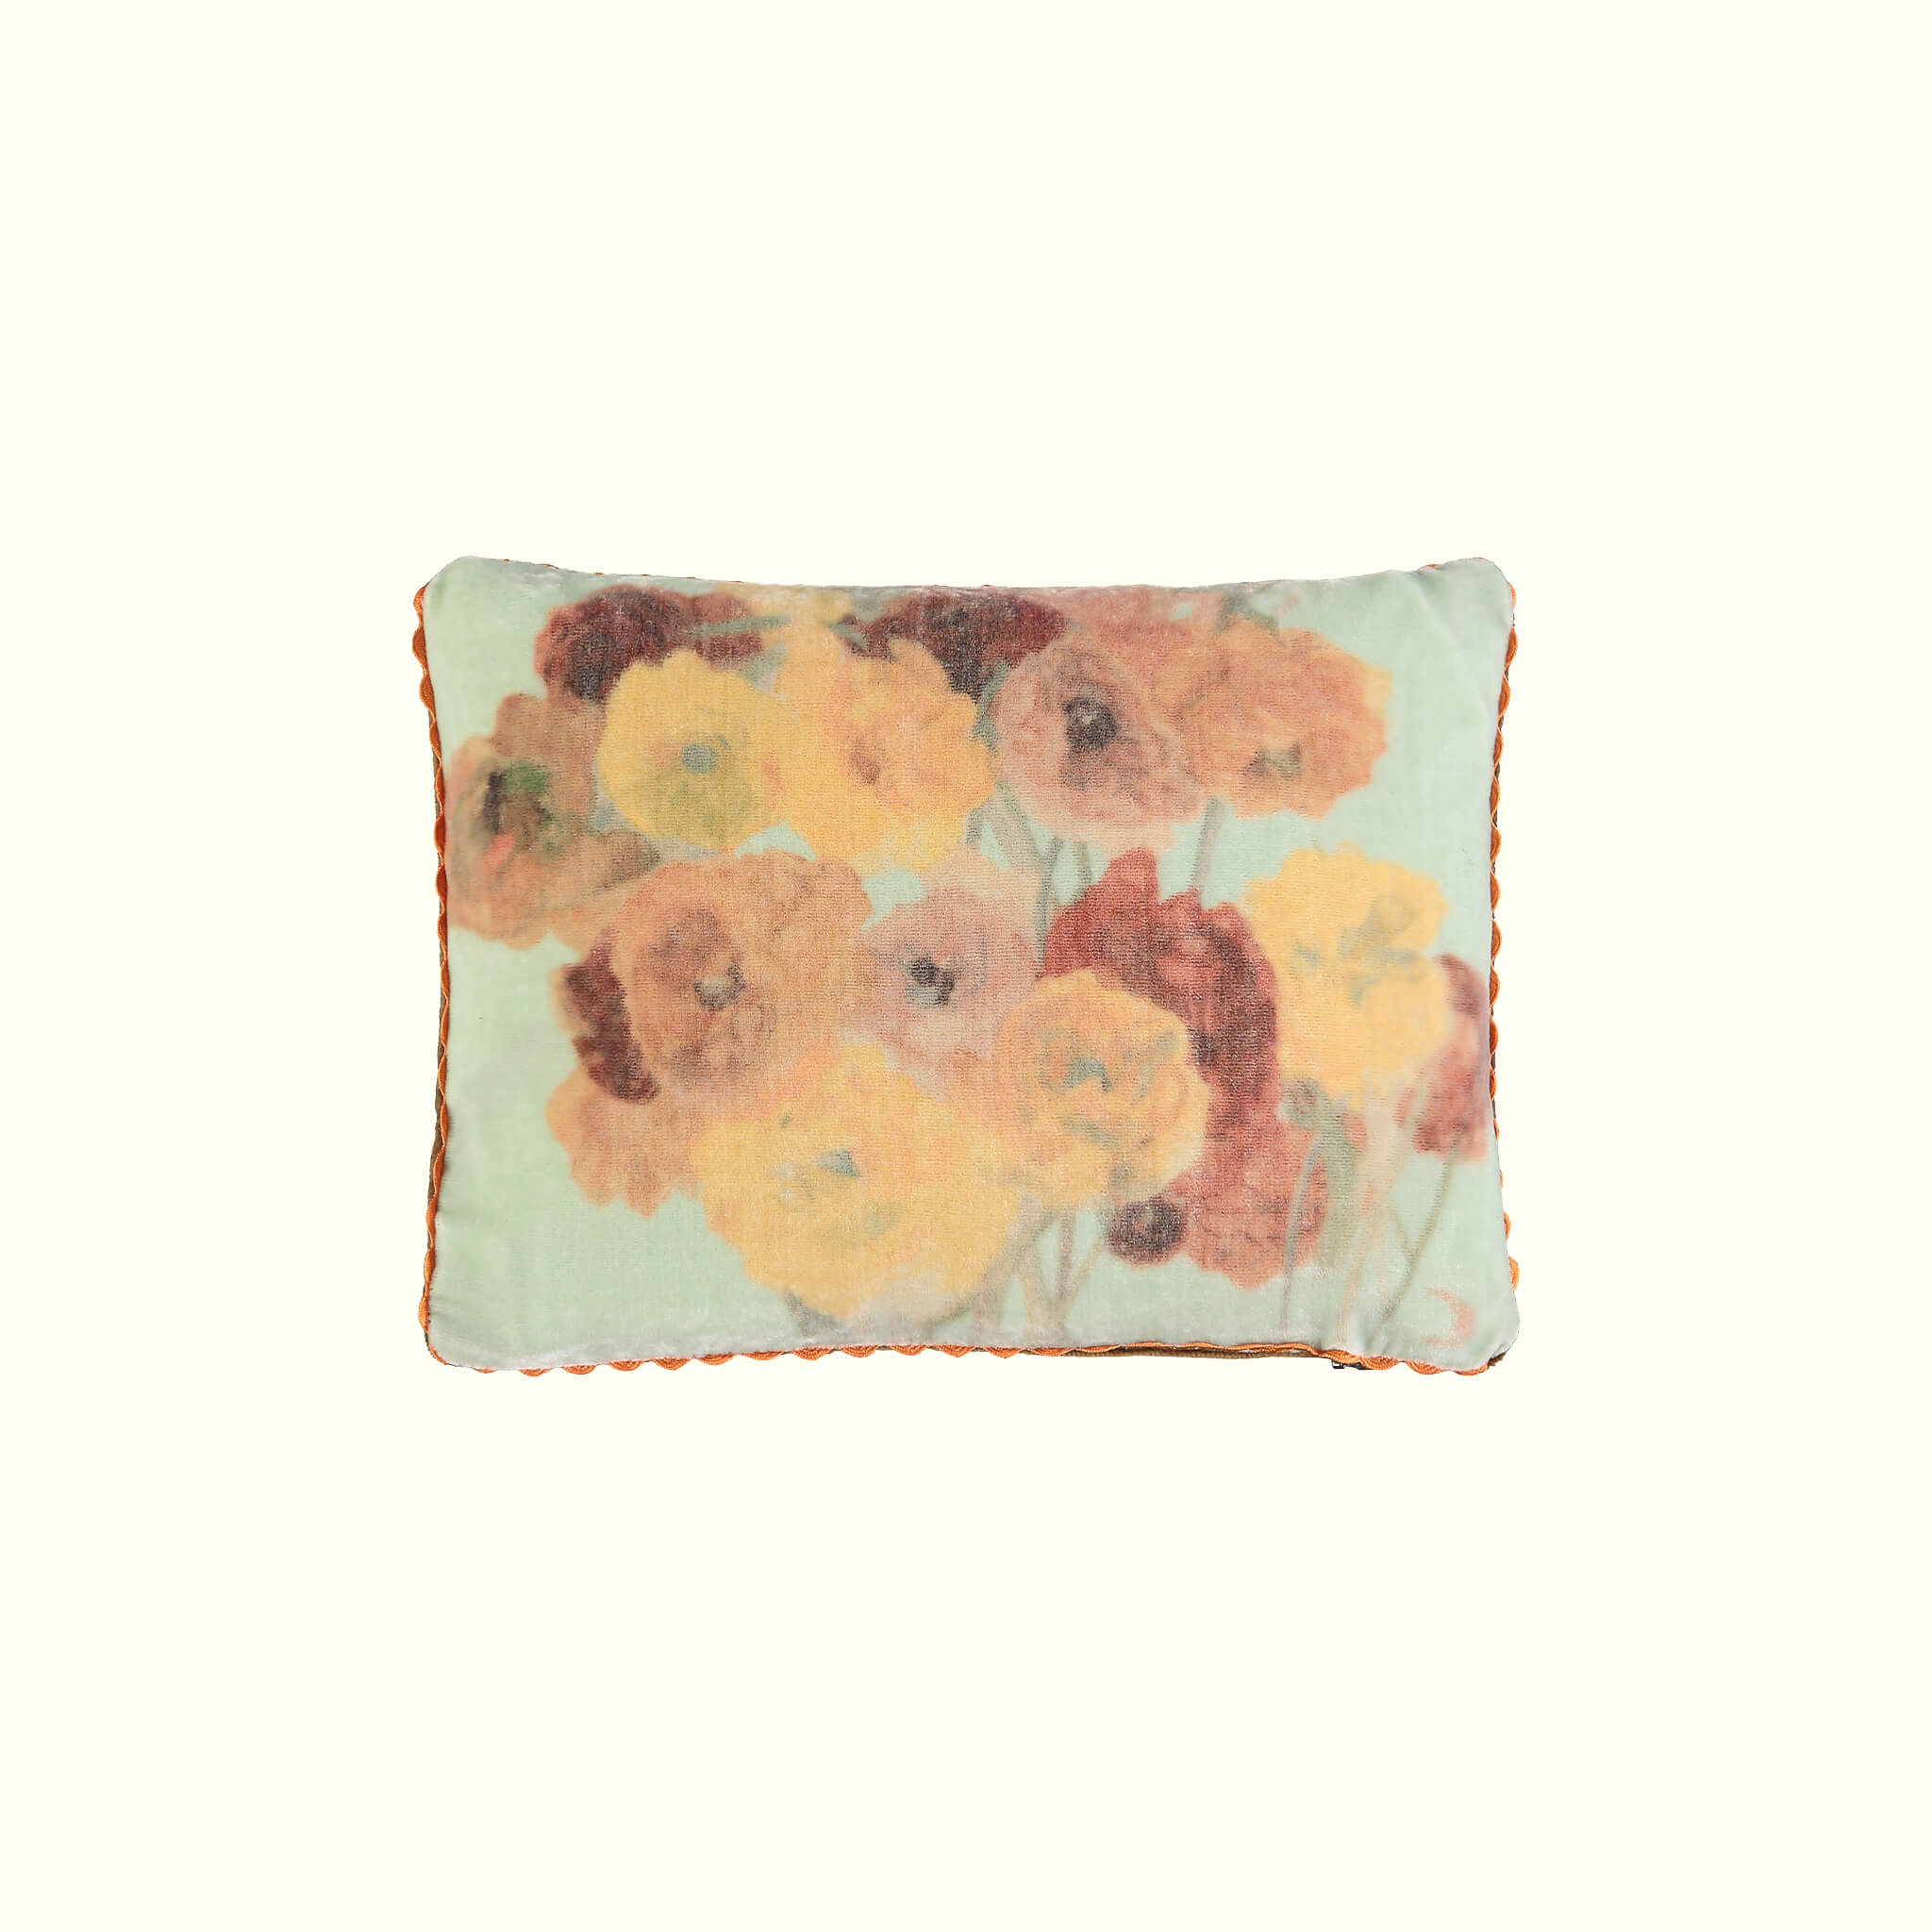 A luxury British silk velvet travel pillow by GVE in mint ochre Ranunculus print design.